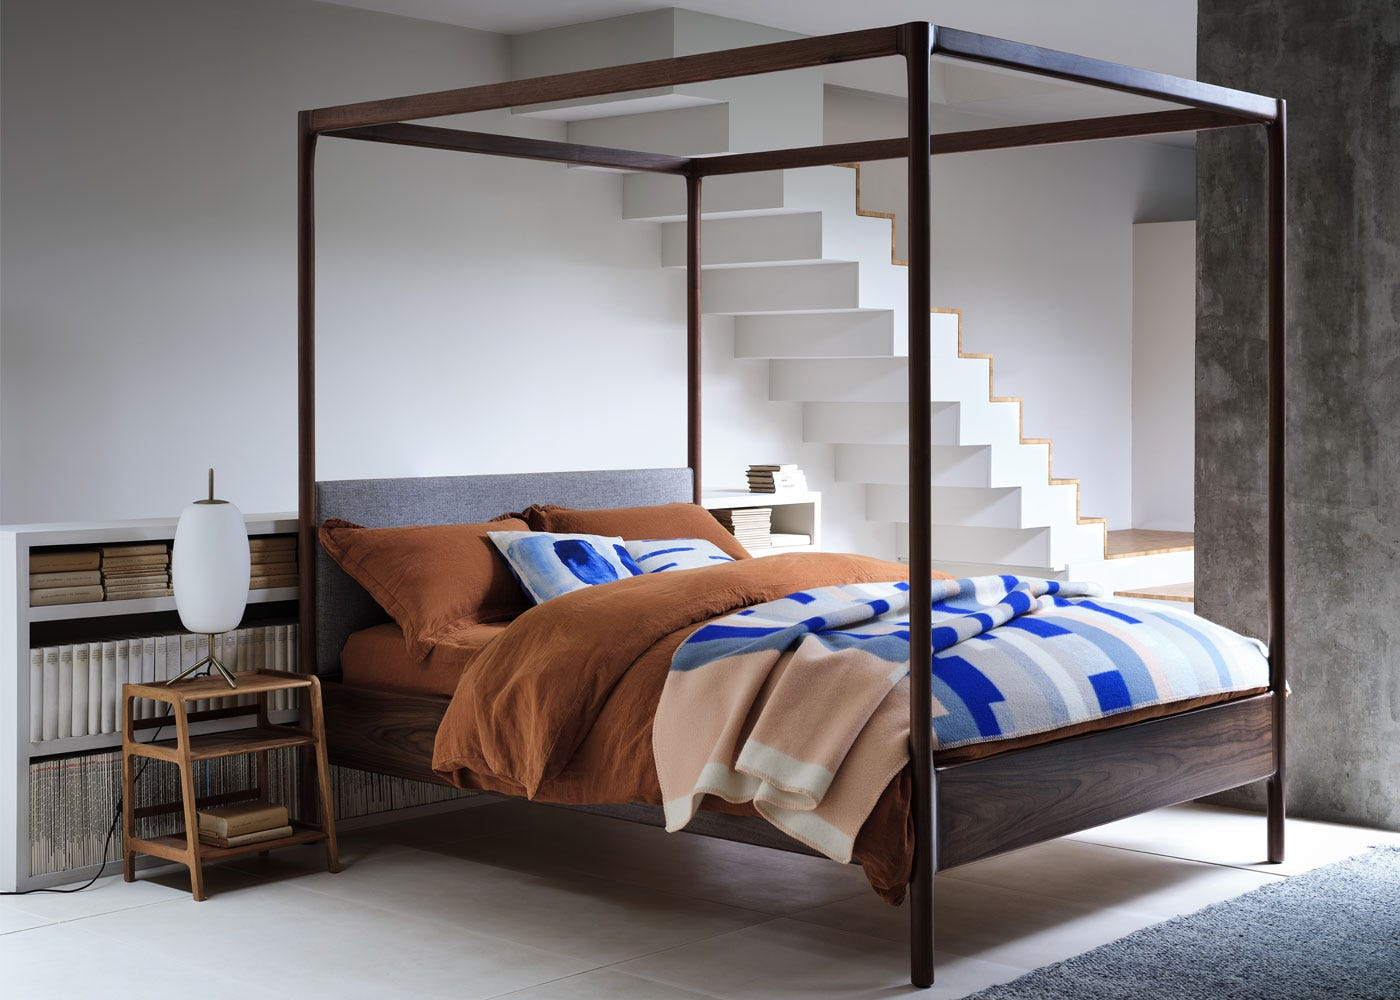 As shown: Marlow 4 poster bed - Side profile.